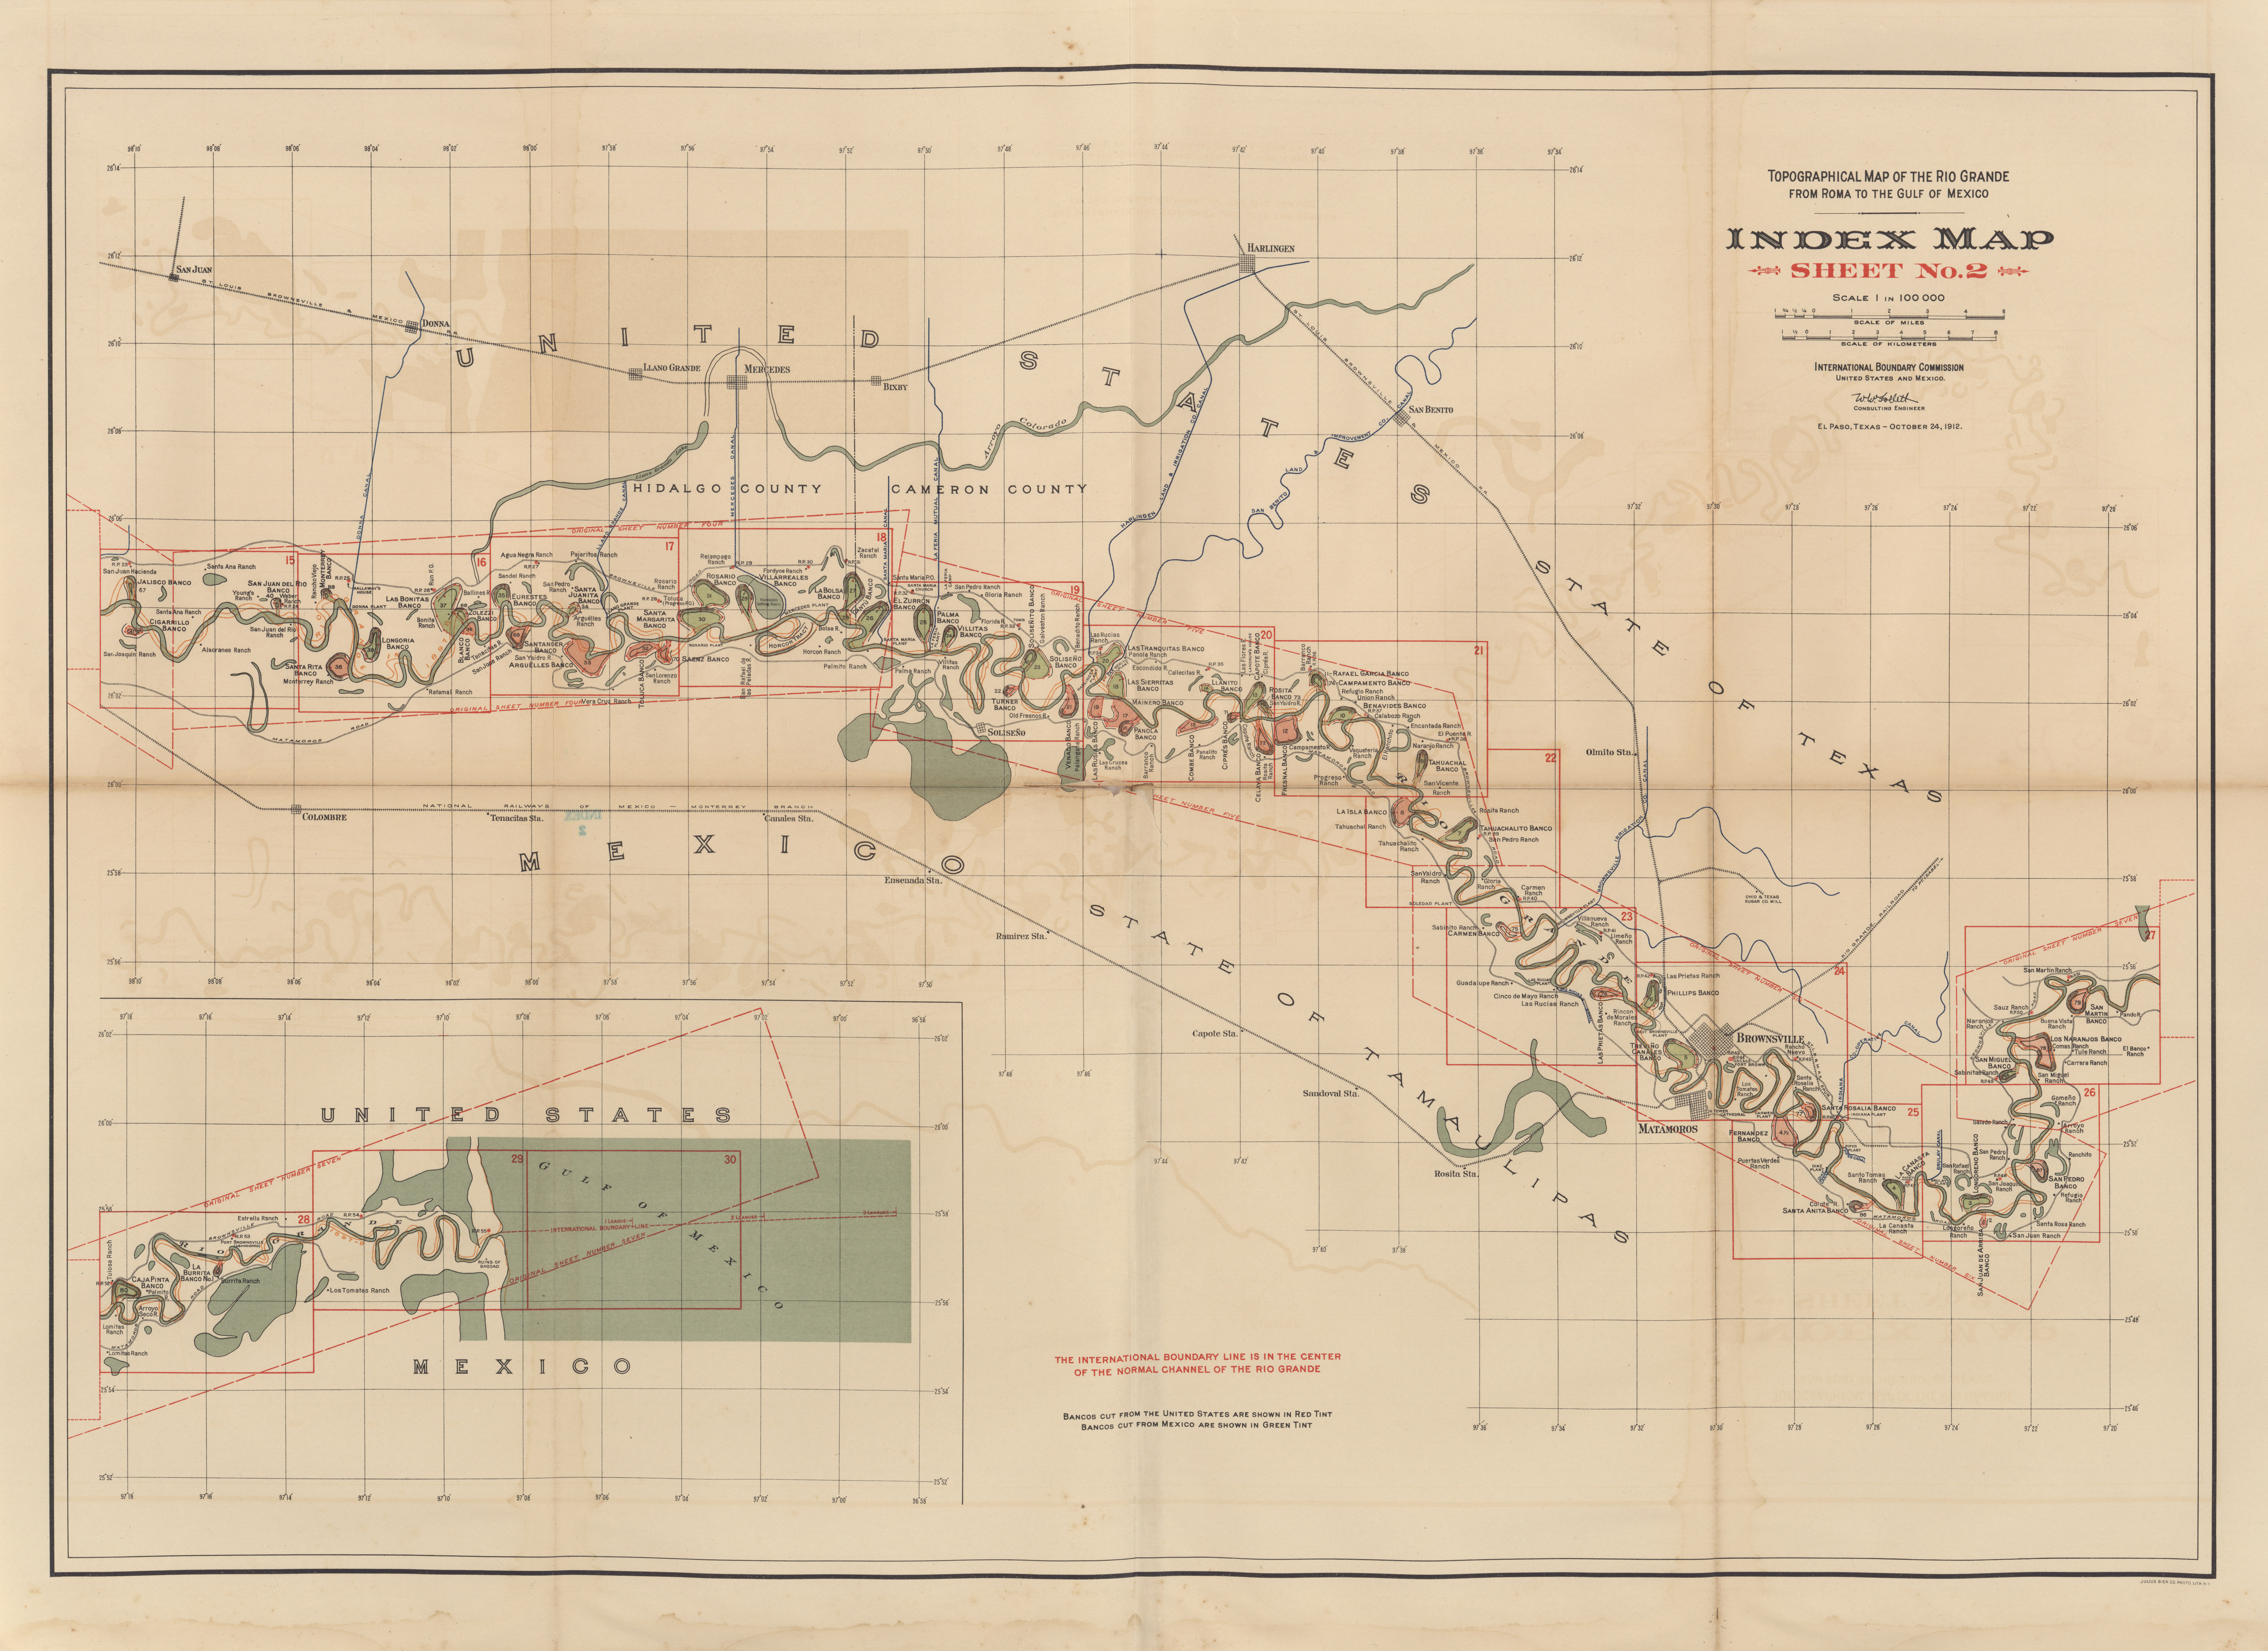 Maps from the International Boundary mission Perry Casta±eda